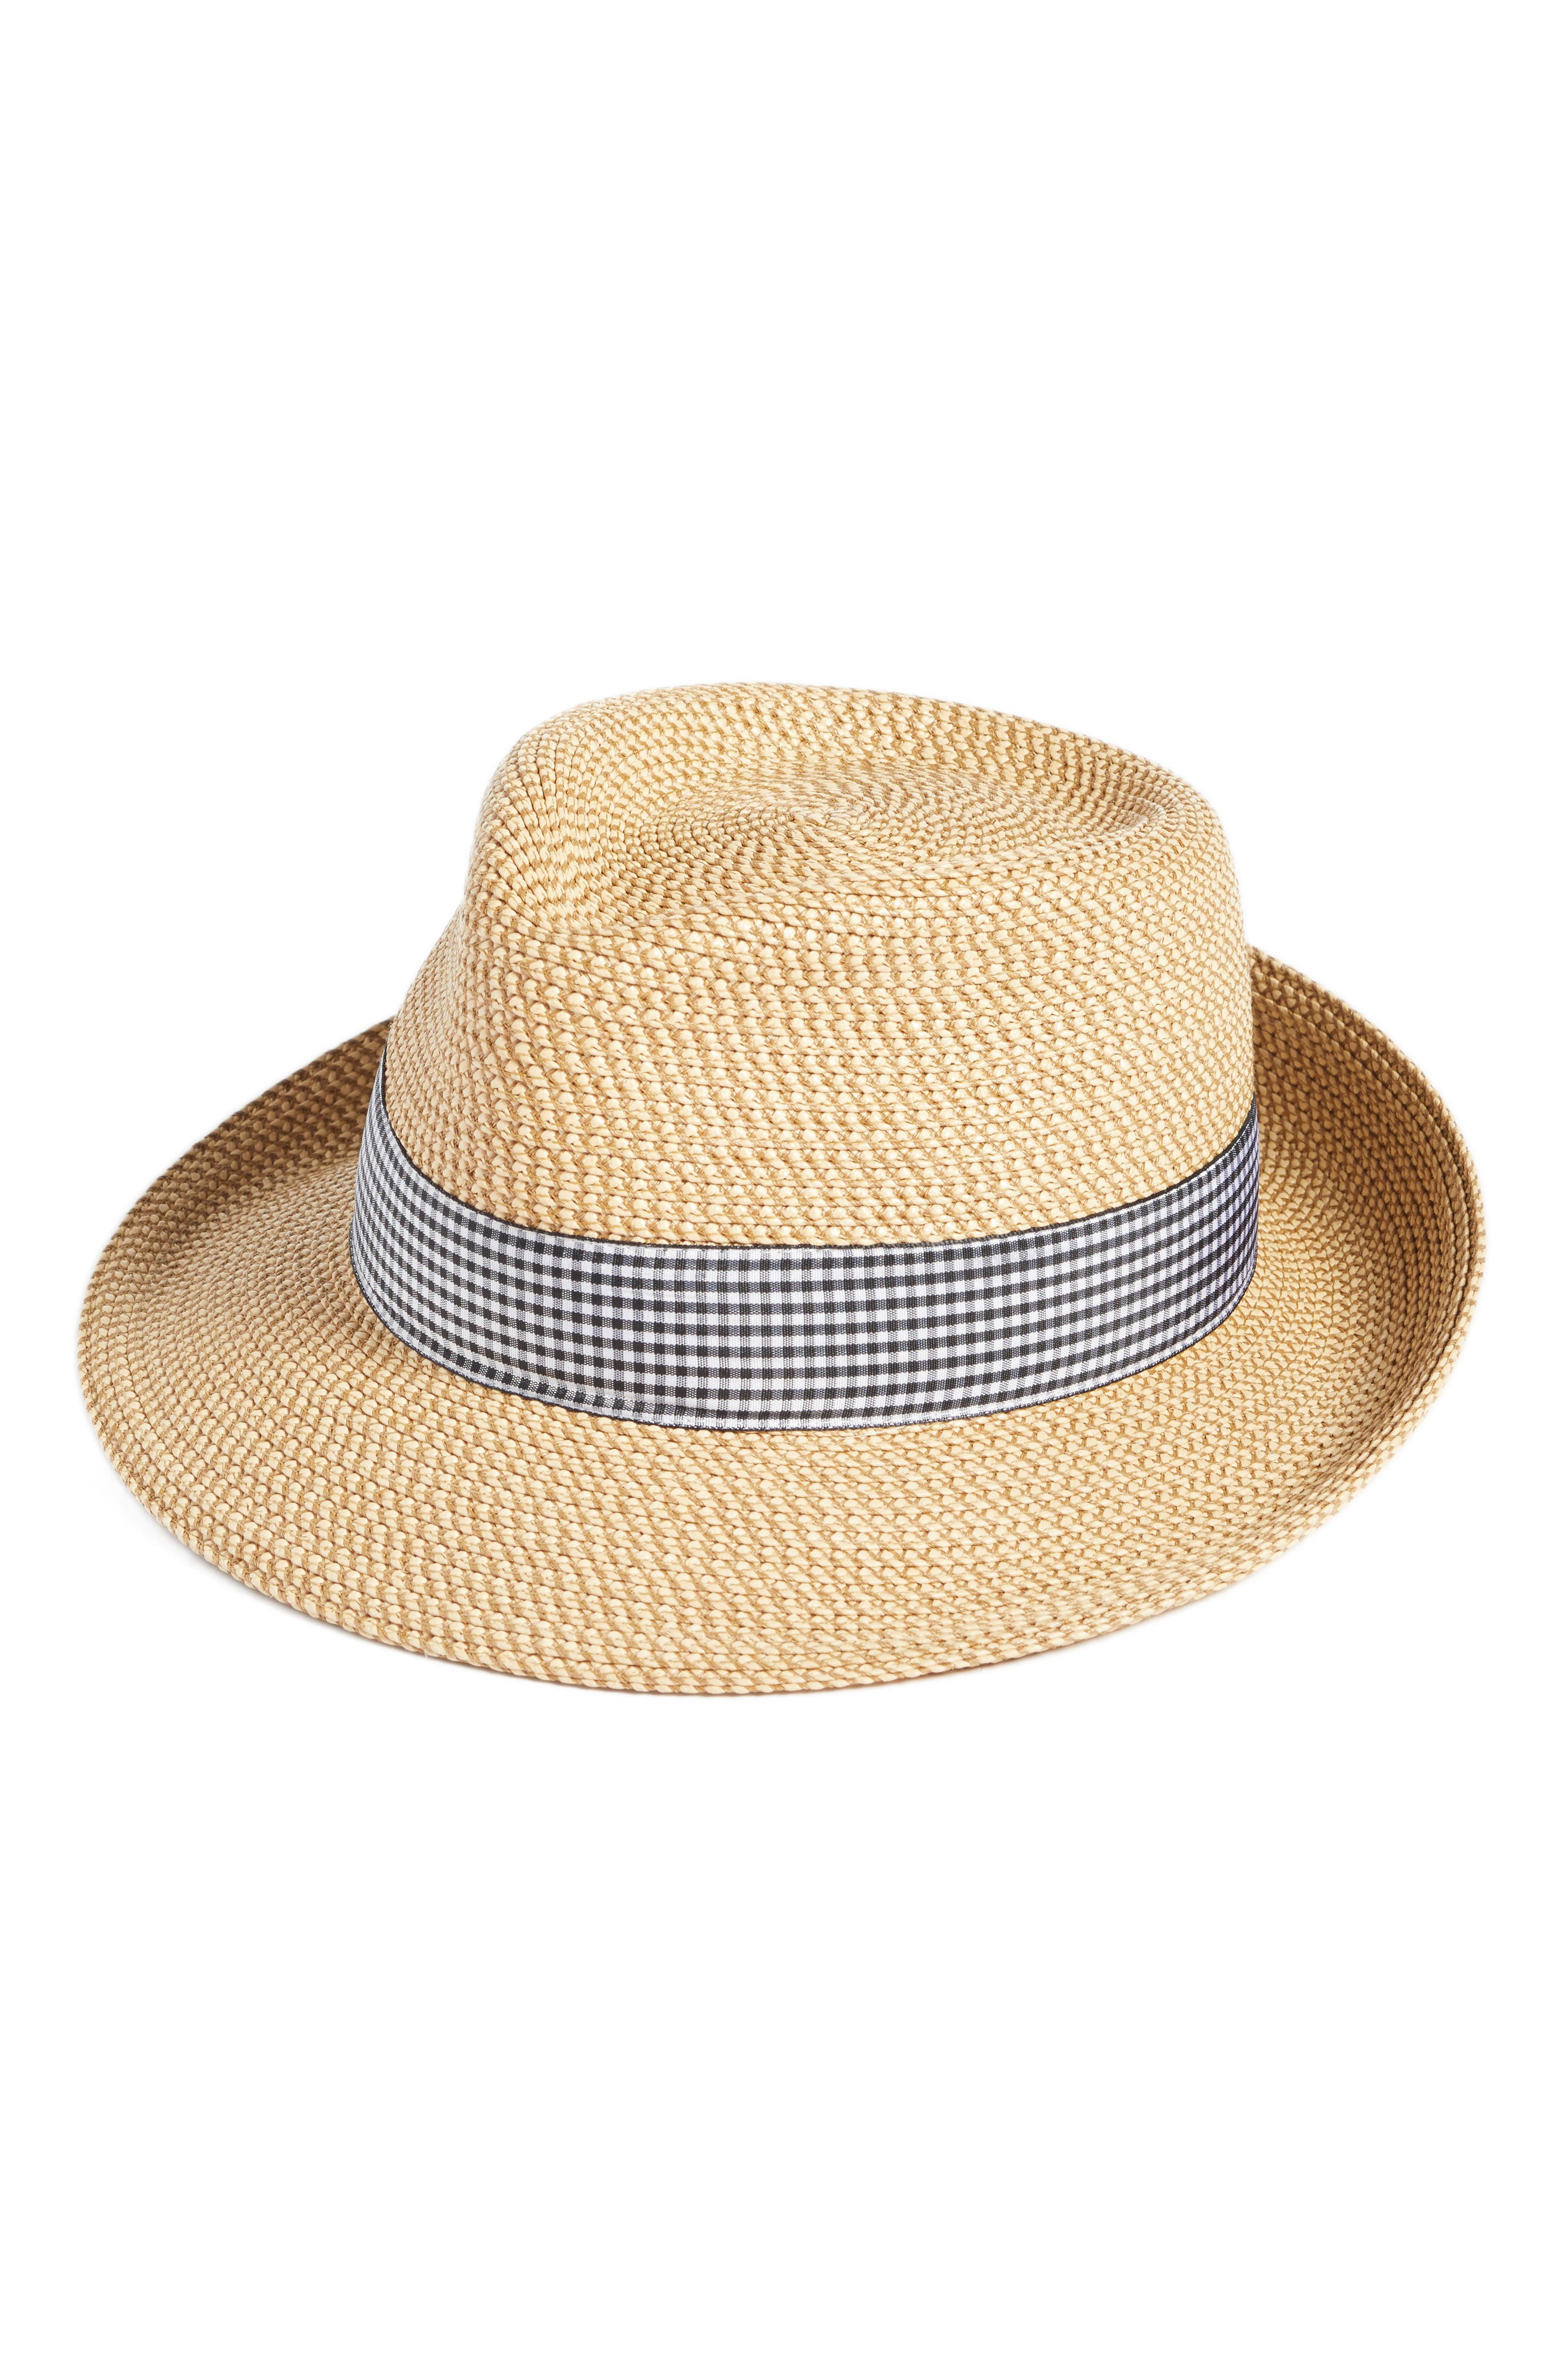 'Classic' Squishee<sup>®</sup> Packable Fedora Sun Hat,                         Main,                         color, Peanut/ Black Check